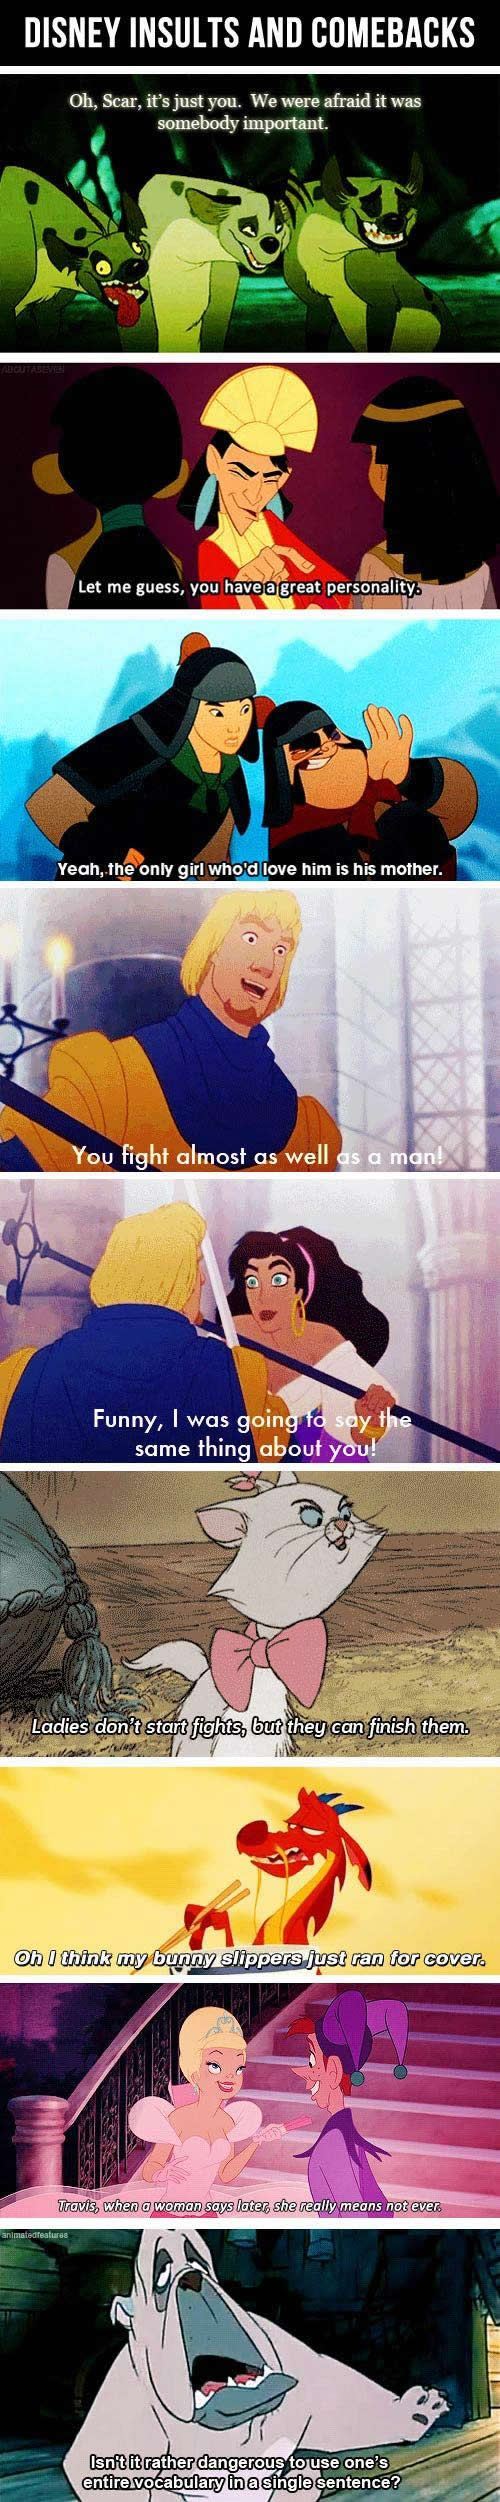 The best Disney insults